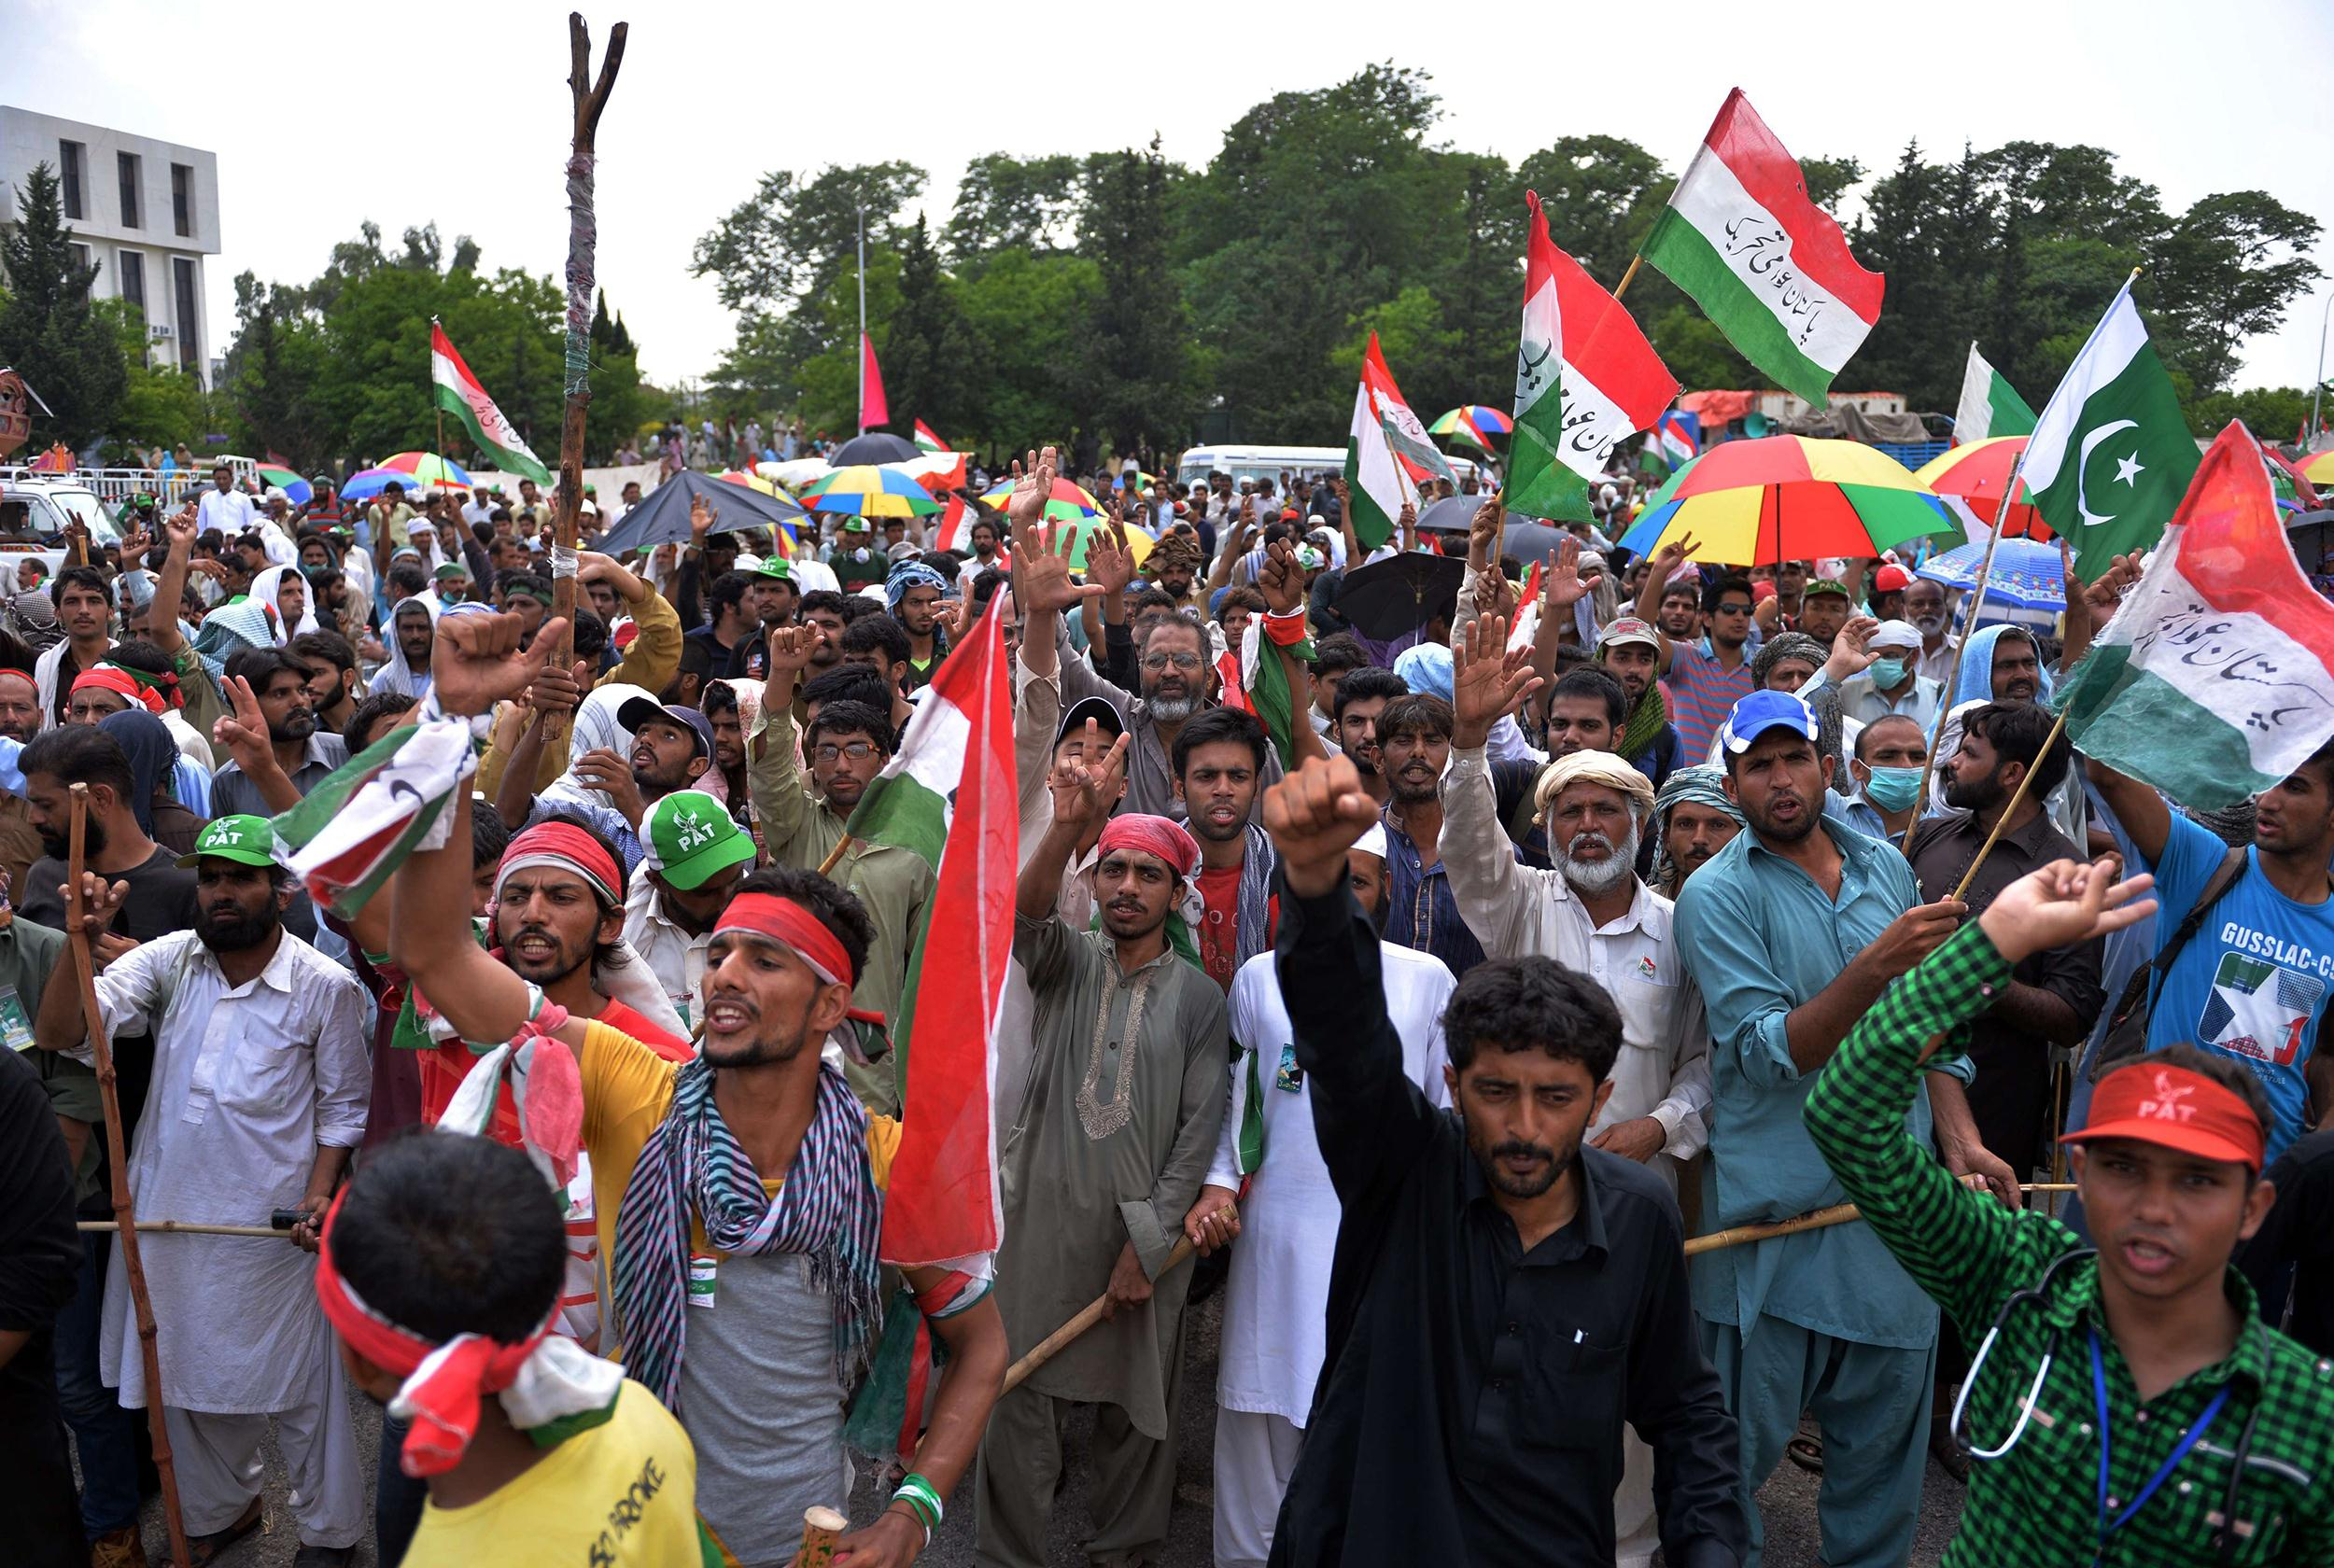 Image: Protesters gather at Pakistan's Parliament